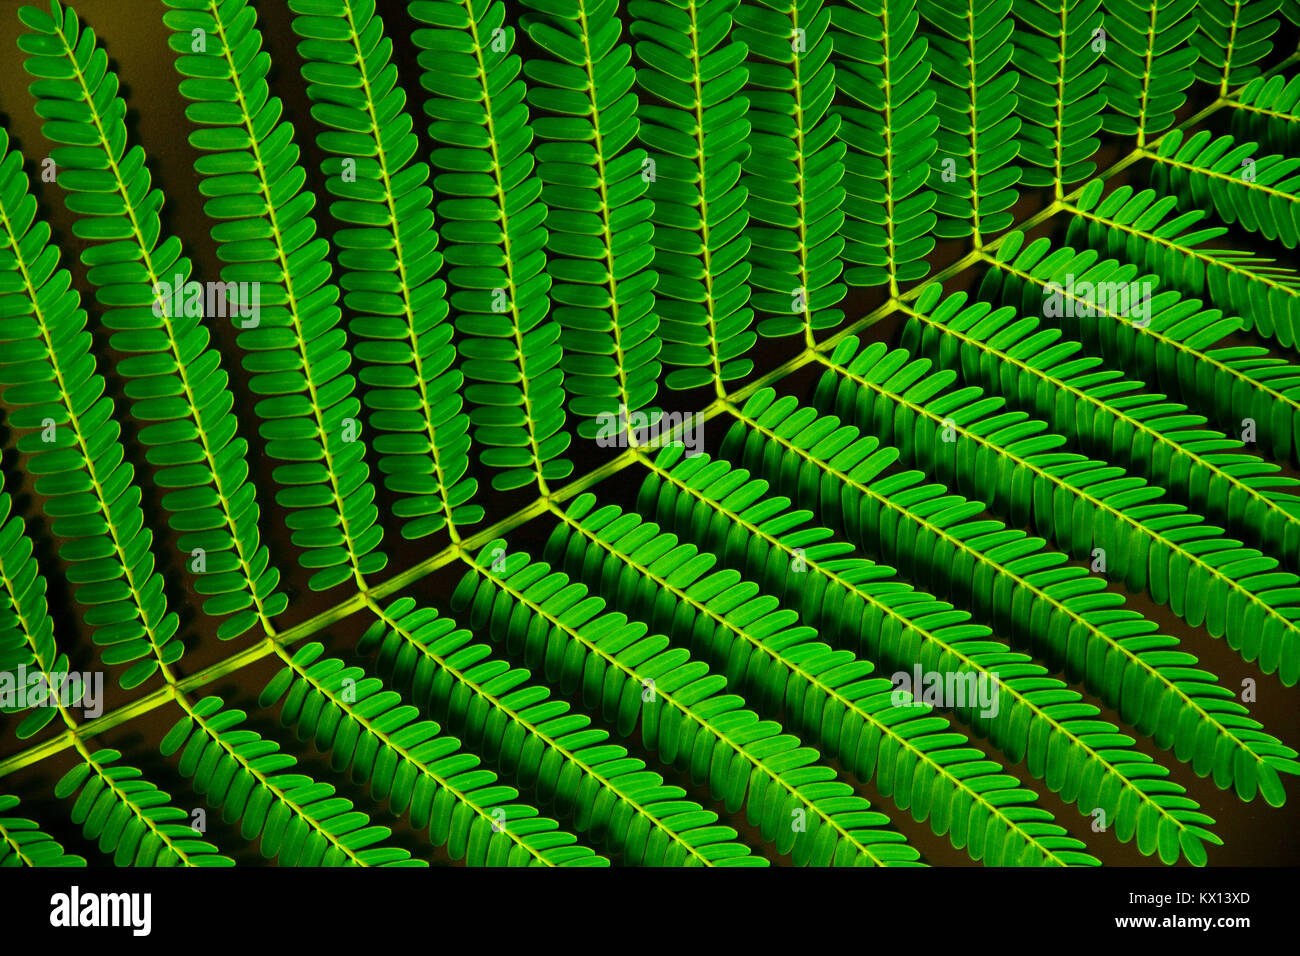 Still life close up photo of Poinciana tree leaf. - Stock Image